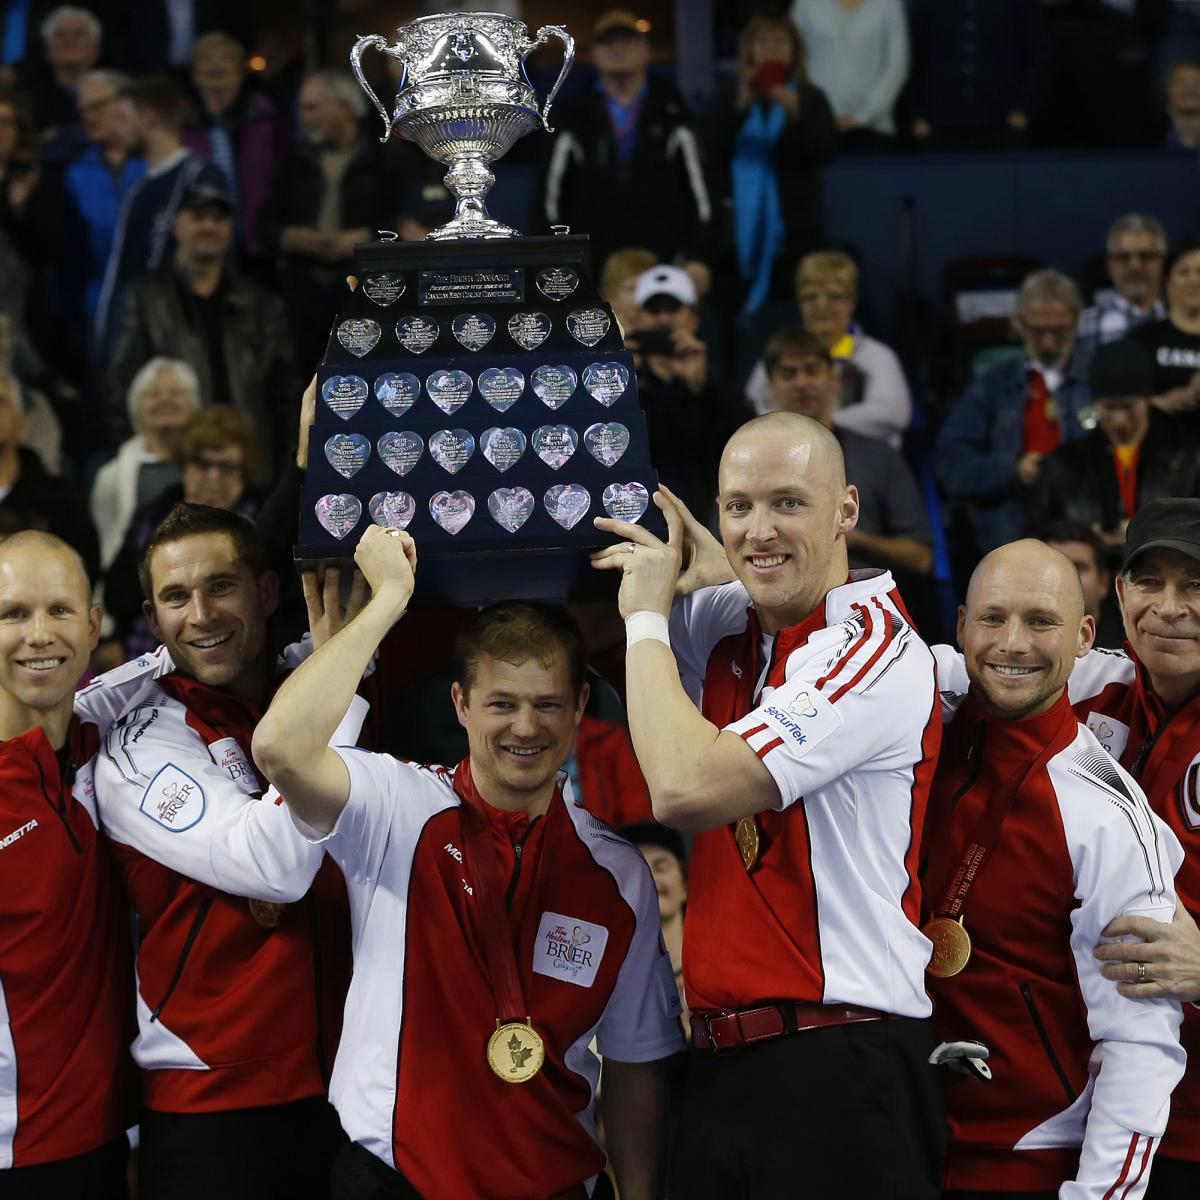 Tim Hortons Brier 2020: Dates, Draw Schedule, Format for Curling Event